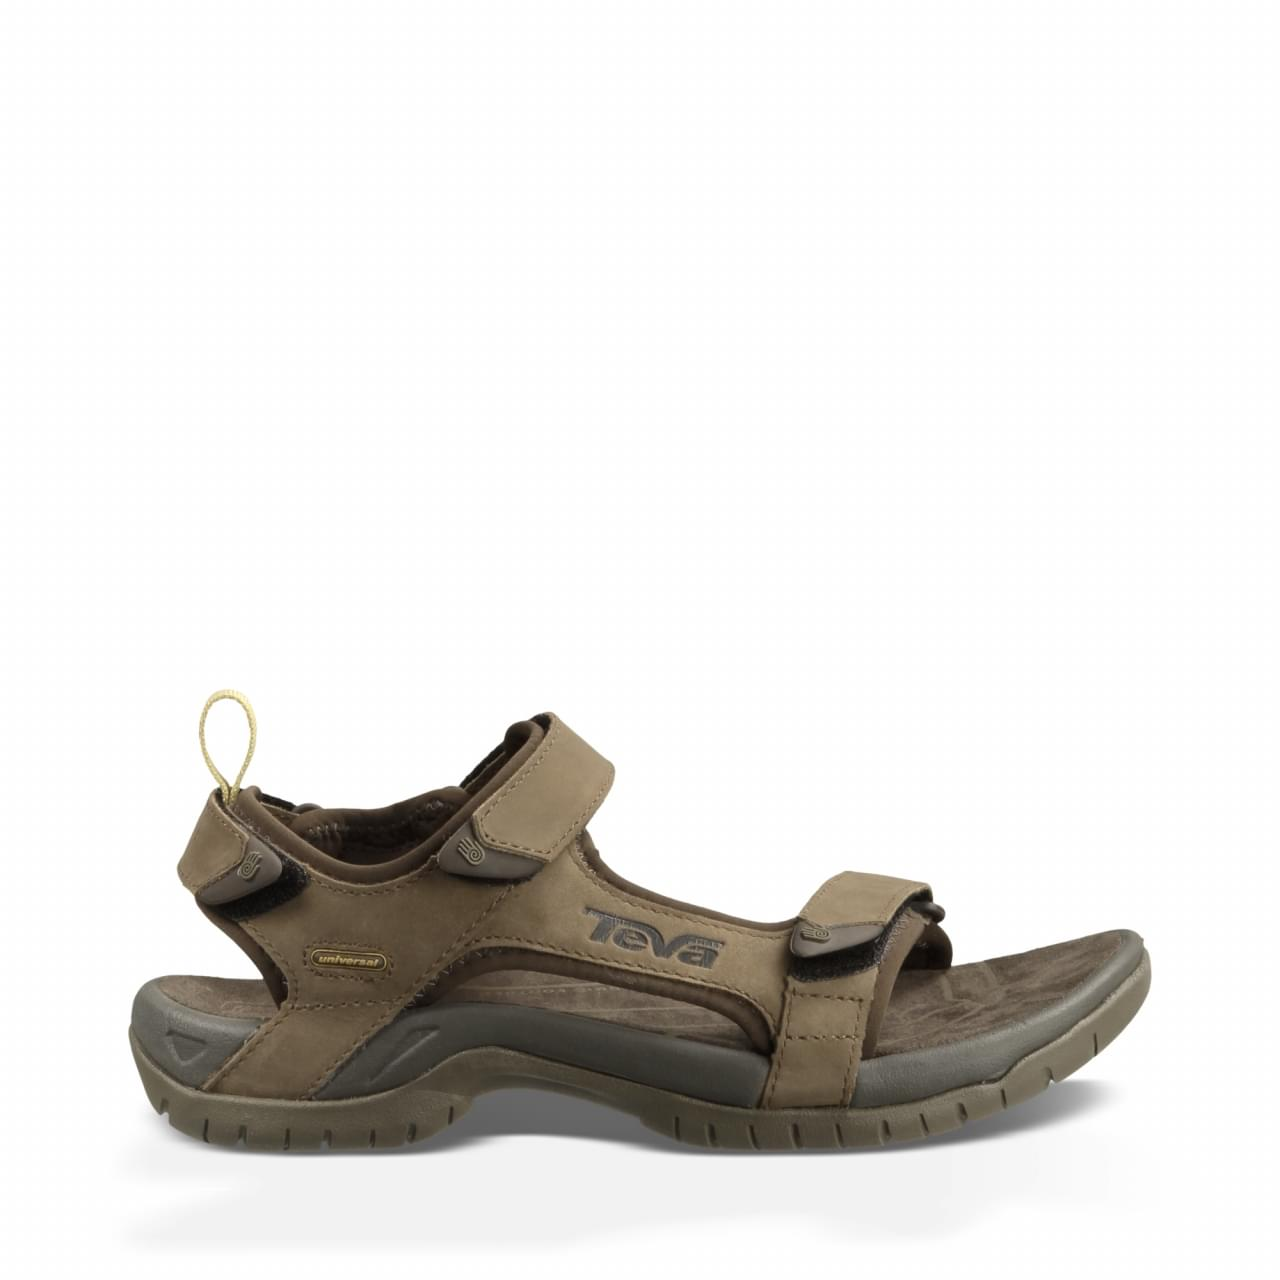 Teva Tanza Leather Sandaal Heren